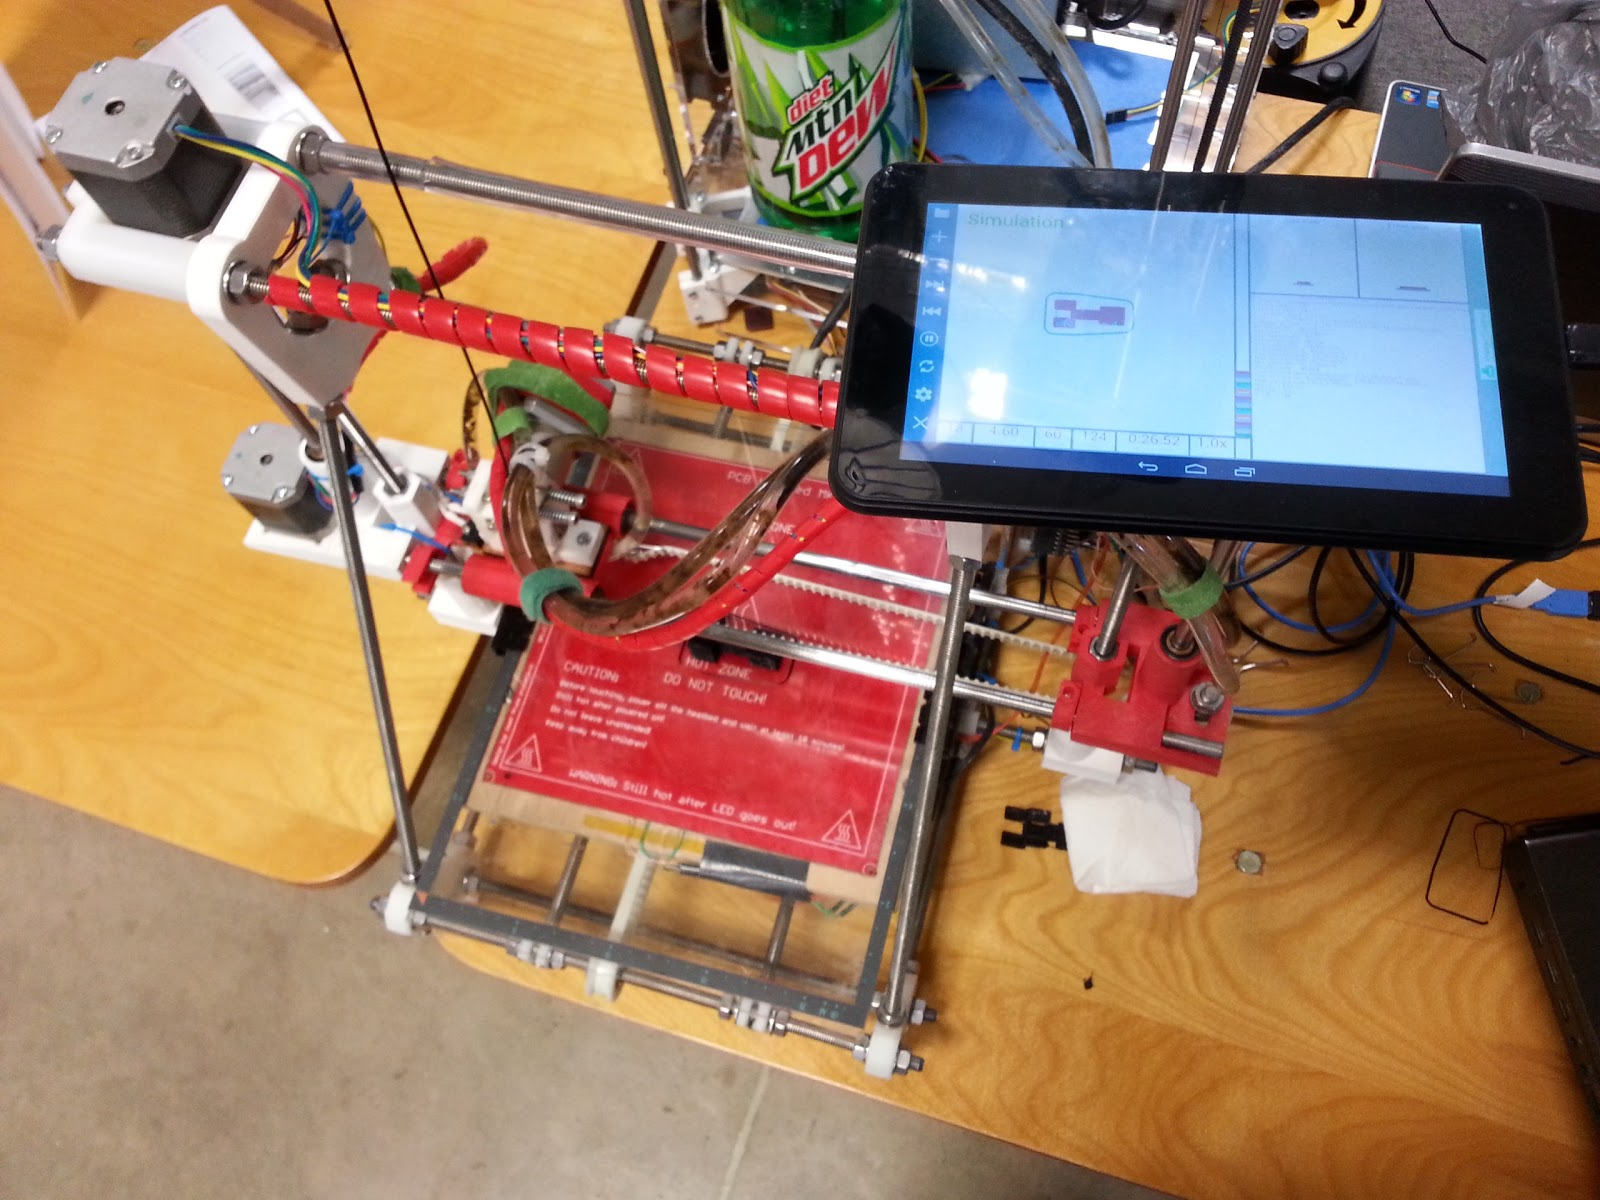 I finally got a chance to give this a try at the Midwest RepRap Fest